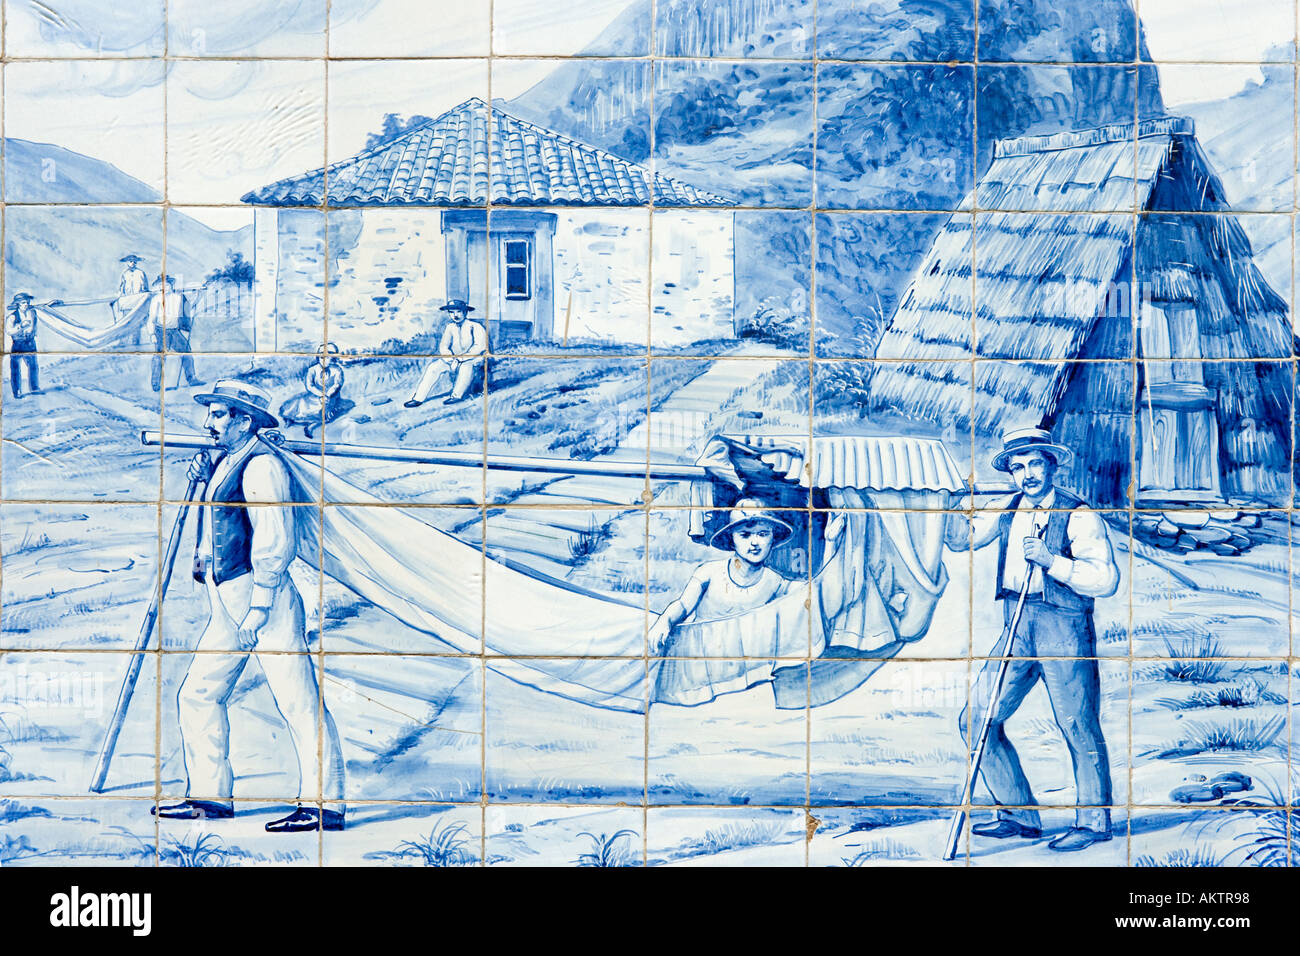 Mural on the side of theToyota Dealership Building, Avenida Arriaga, Funchal, Madeira, Portugal Stock Photo